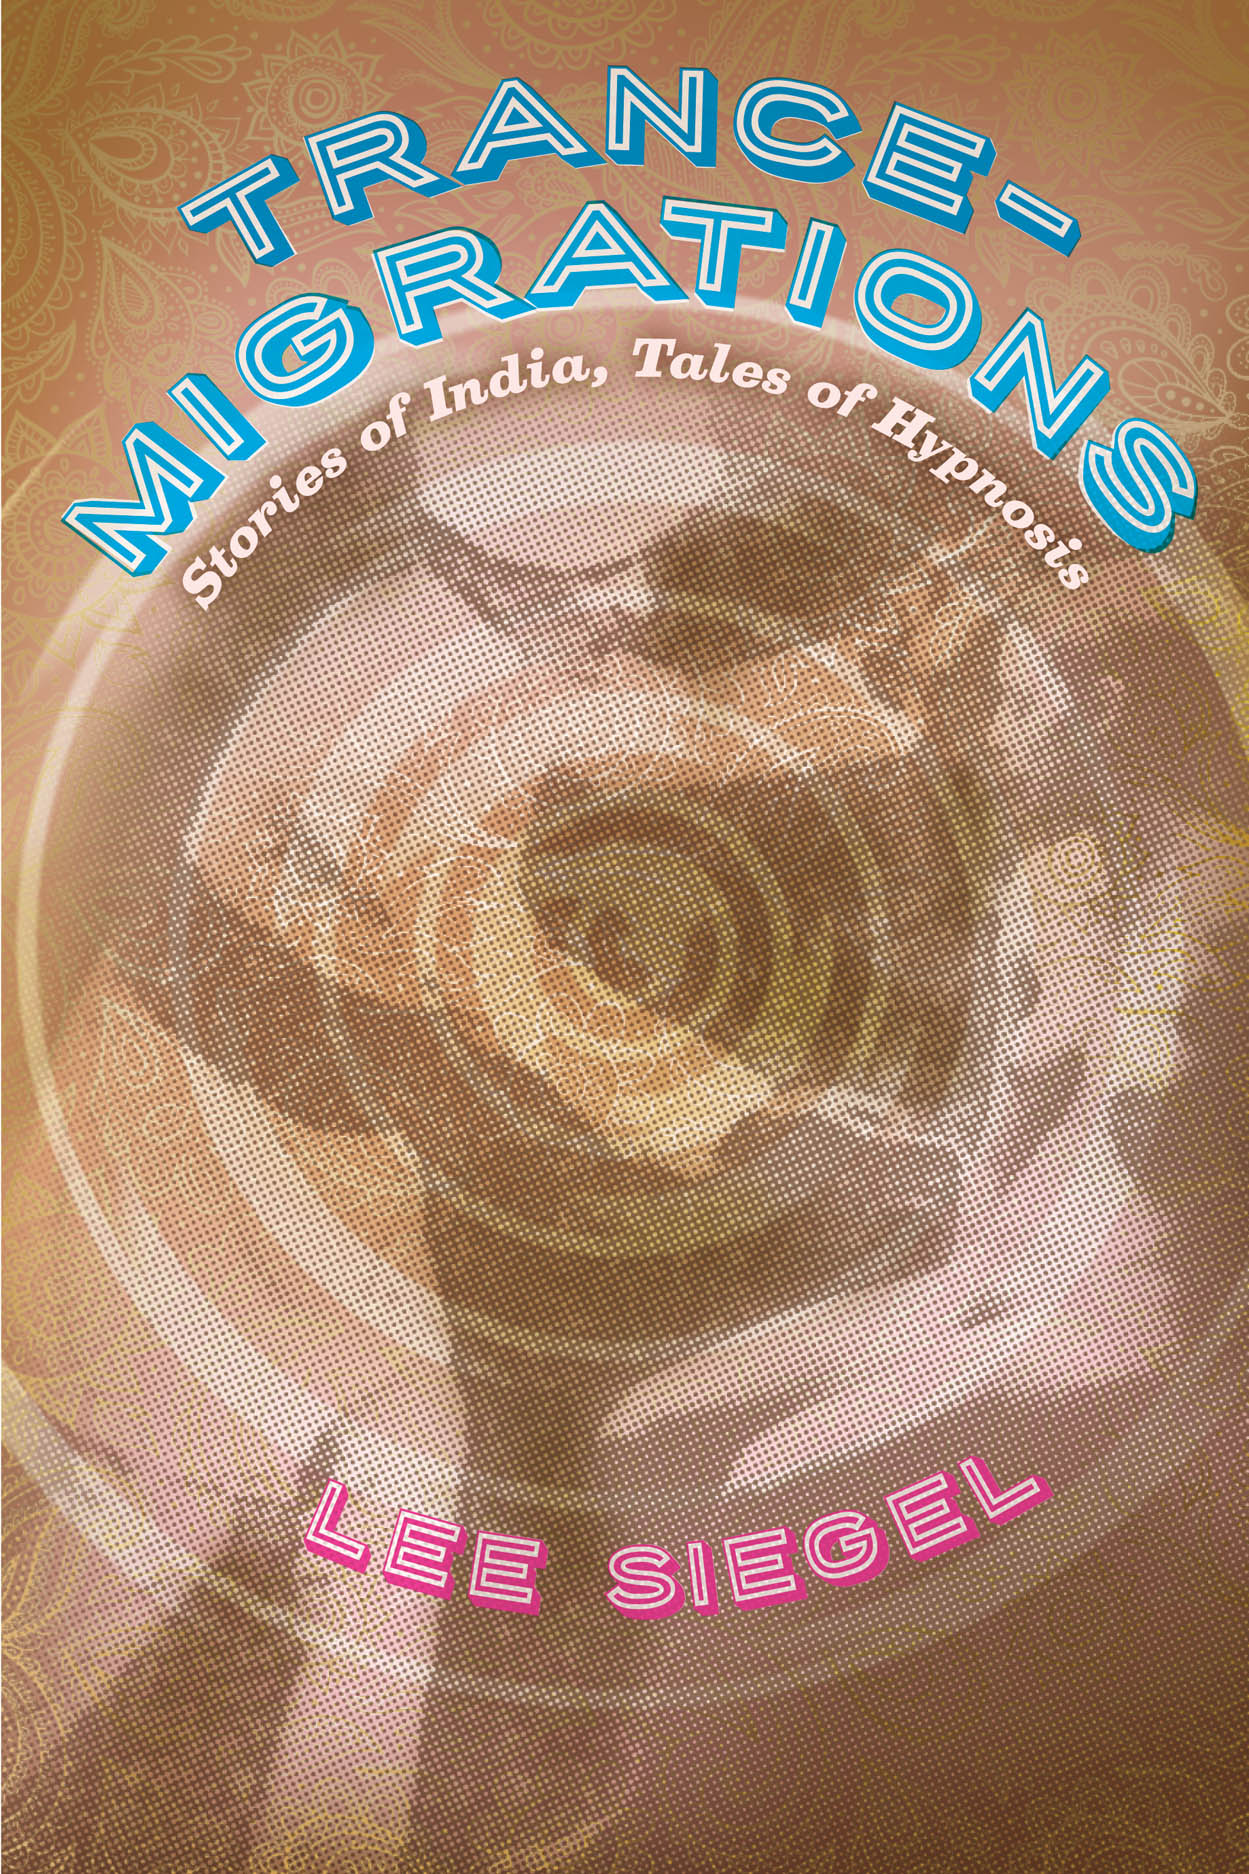 Trance-Migrations: Stories of India, Tales of Hypnosis